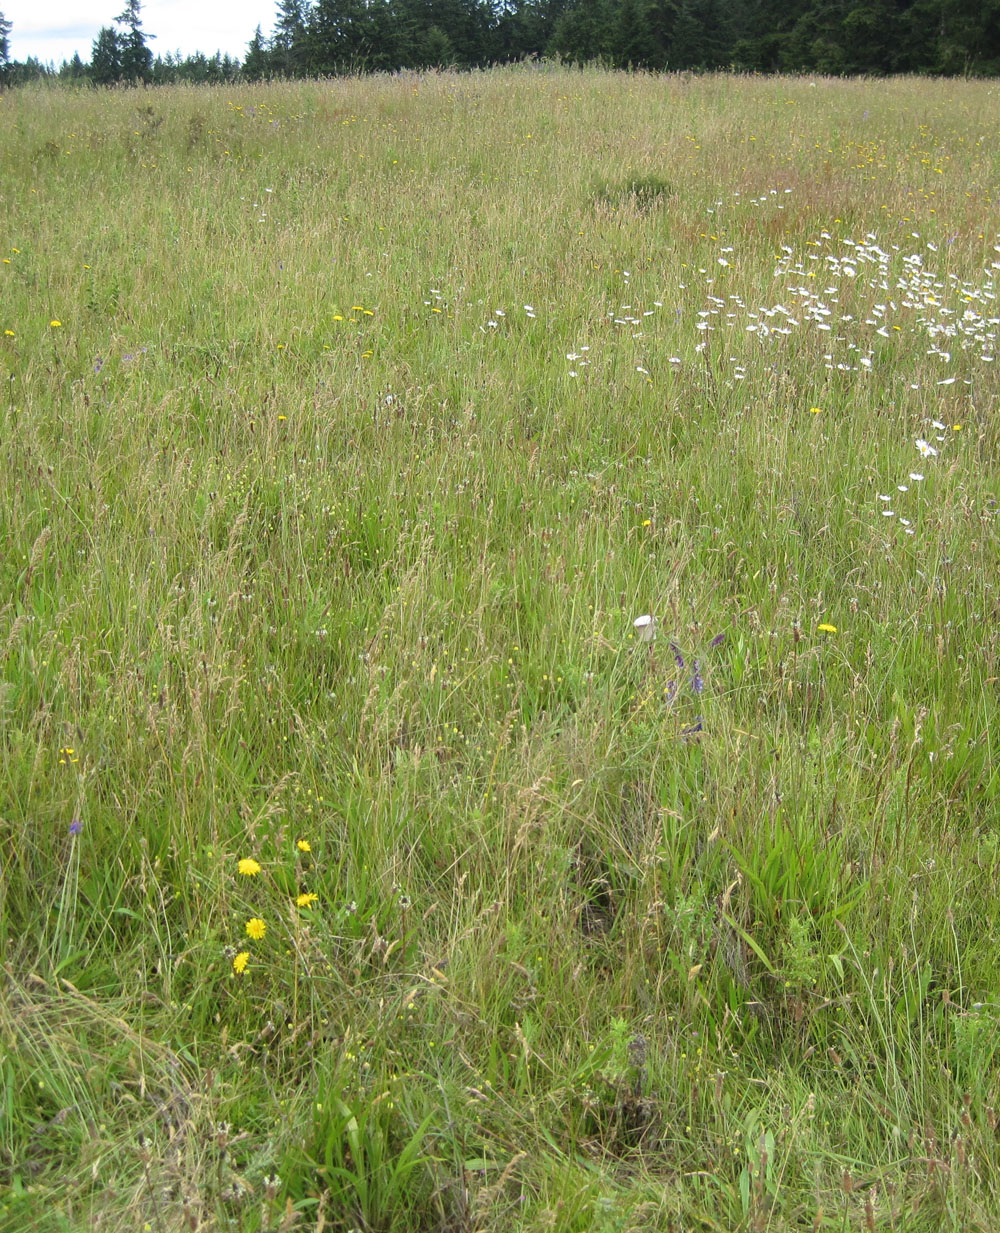 The vast majority of the species pictured at this Whidbey Island site are invasives. They include nine of the 26 study species such as common dandelion and sweet vernal grass. Credit required: University of Washington